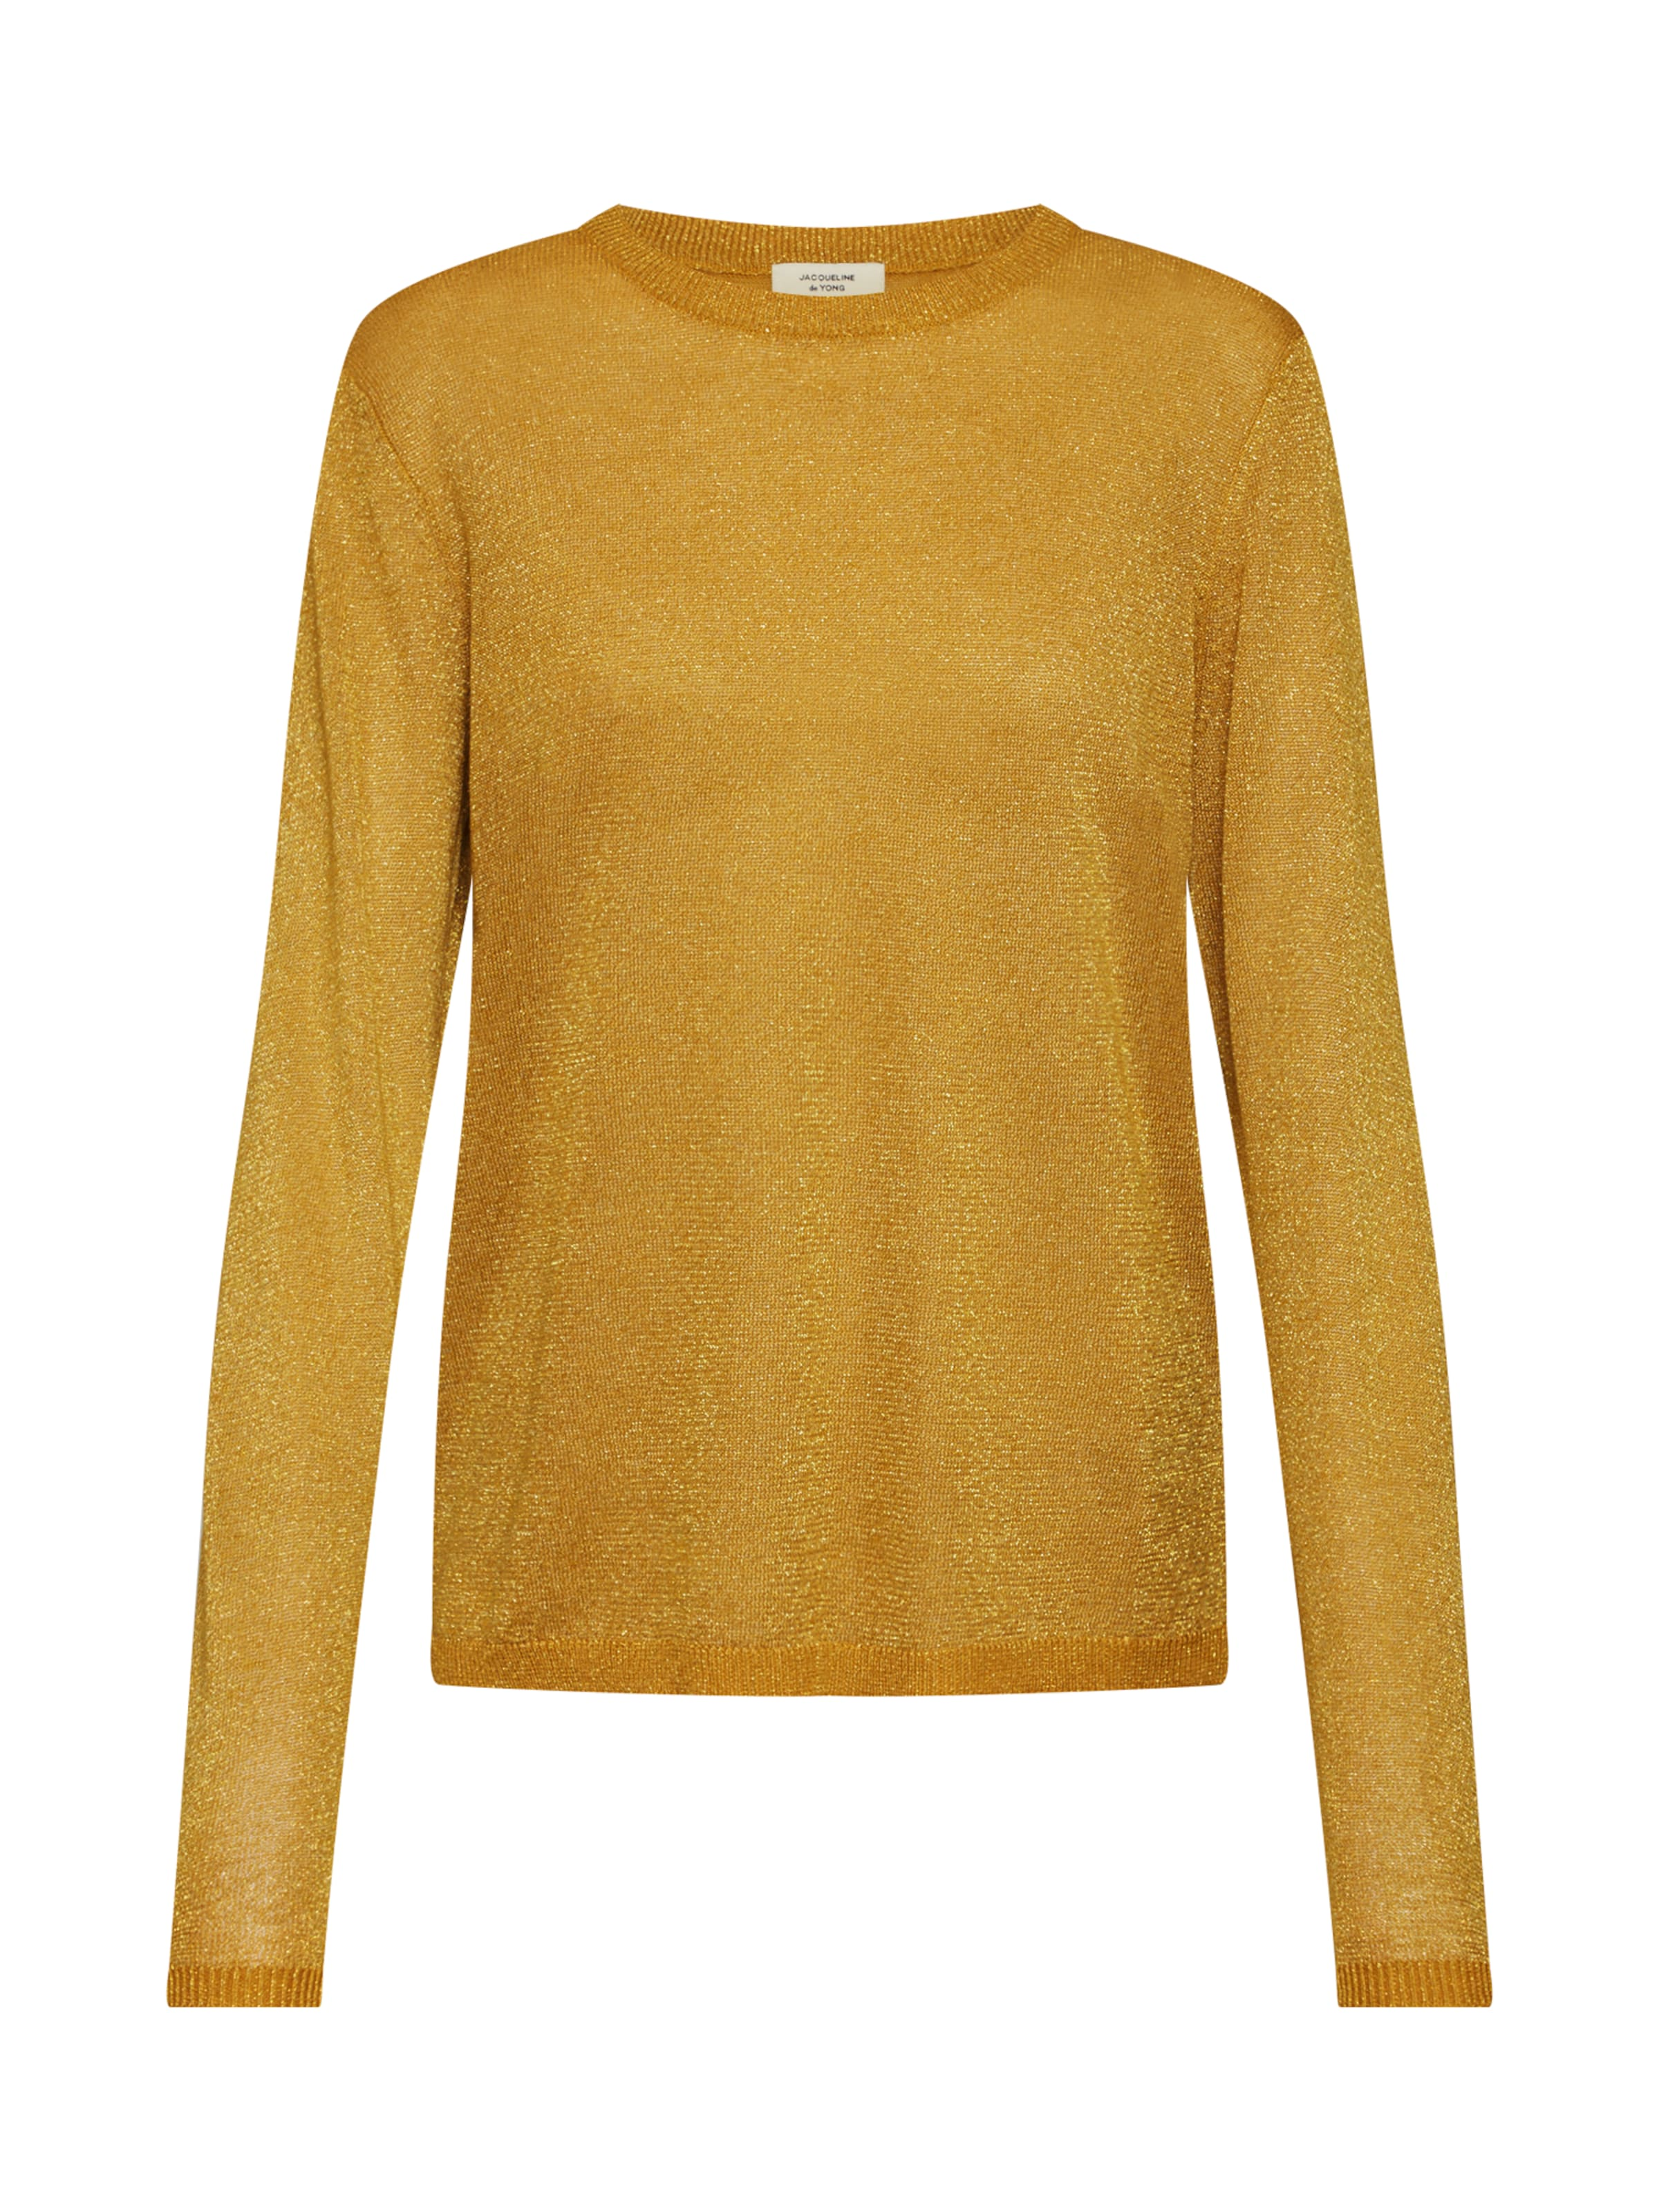 Jacqueline In Goldgelb Pullover De Yong Yb7vfyI6gm